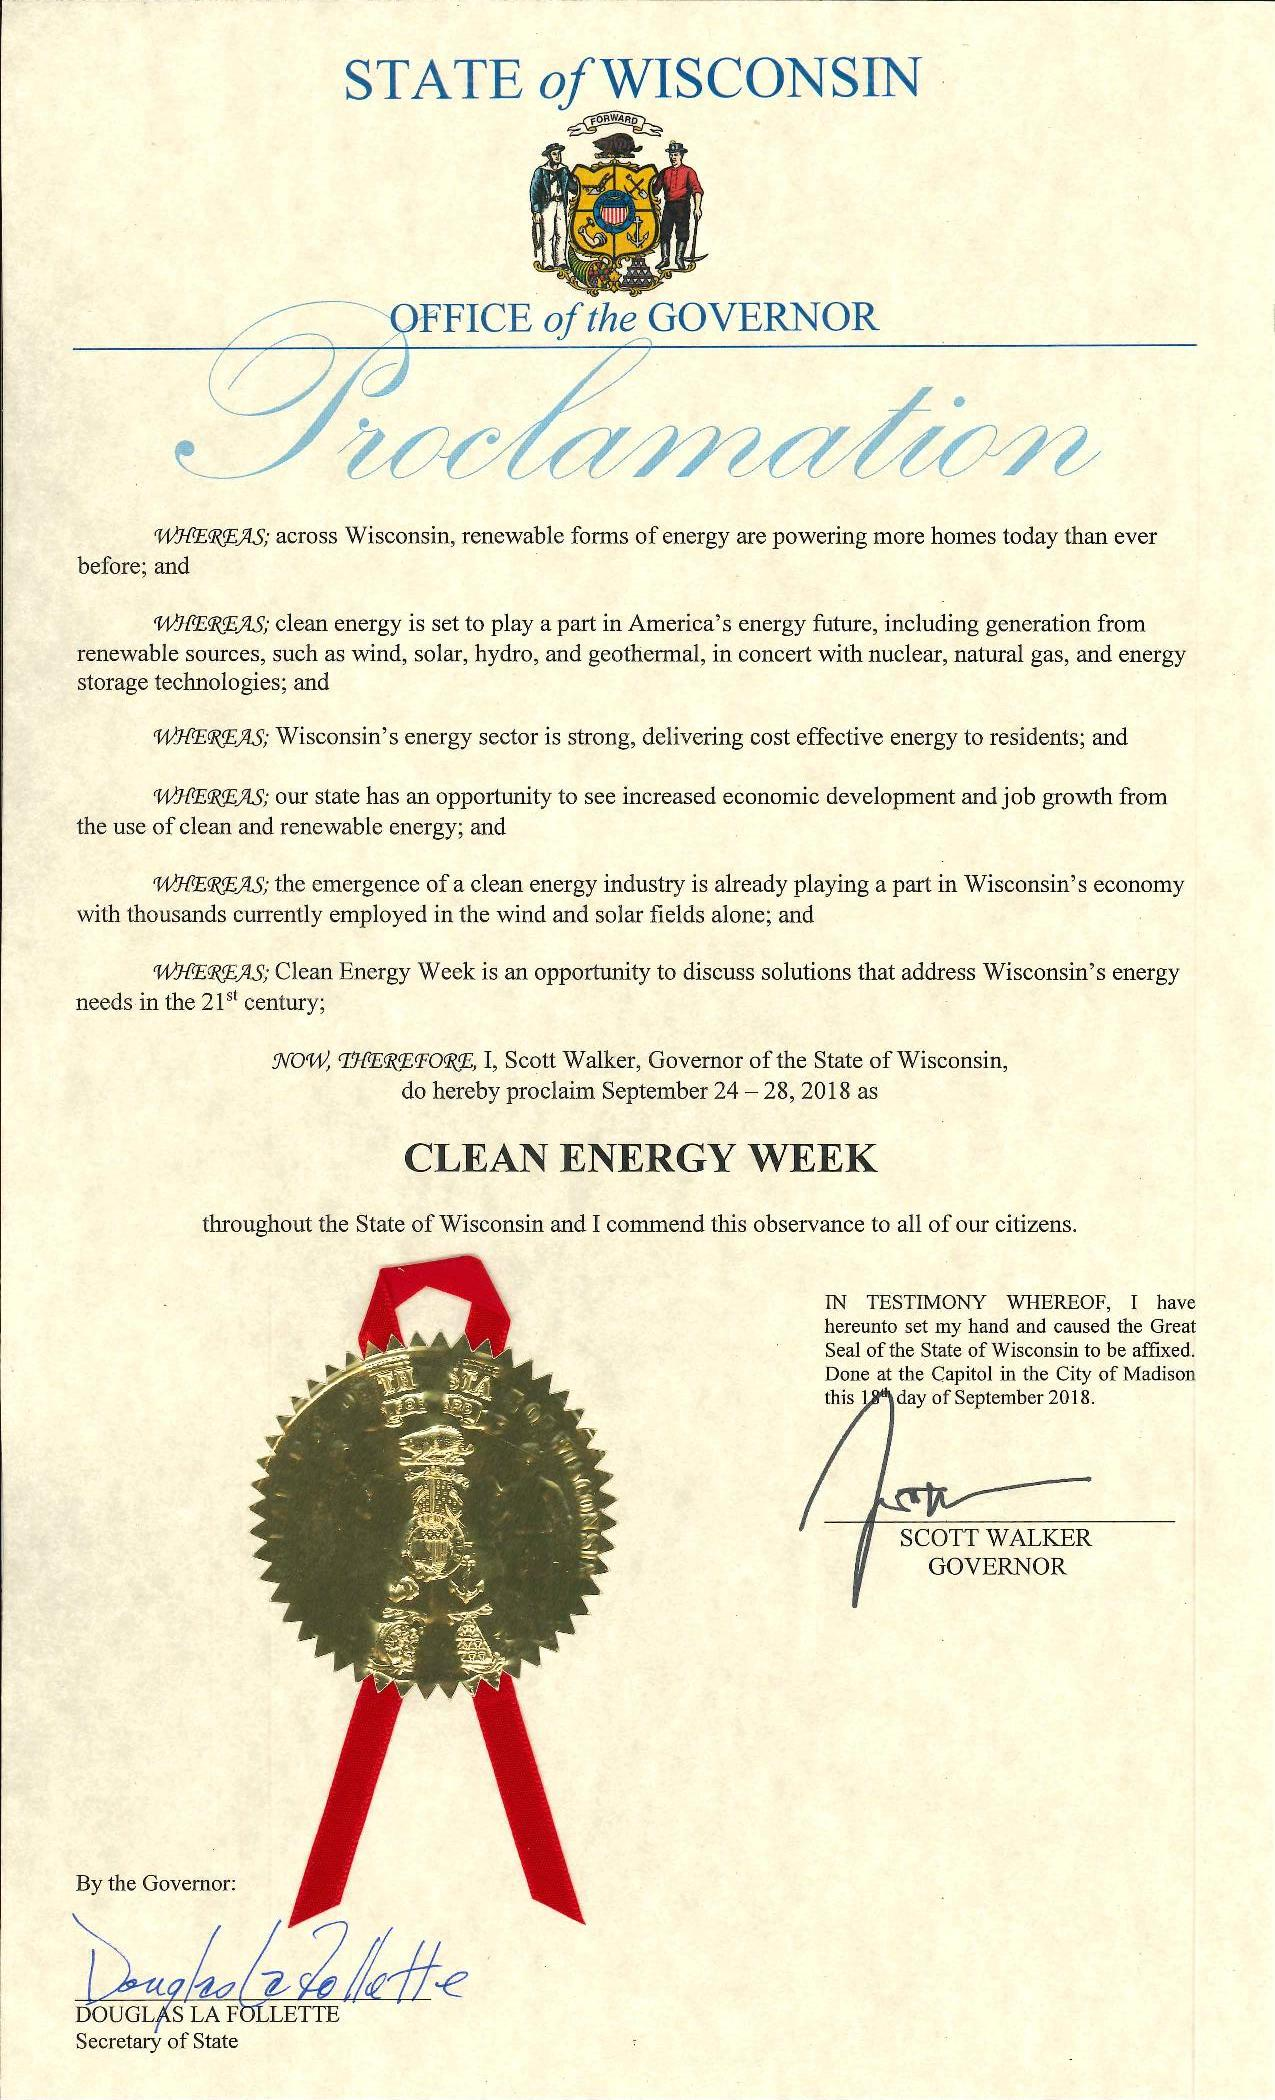 09.24.18-09.28.18 Clean Energy Week-page-001.jpg